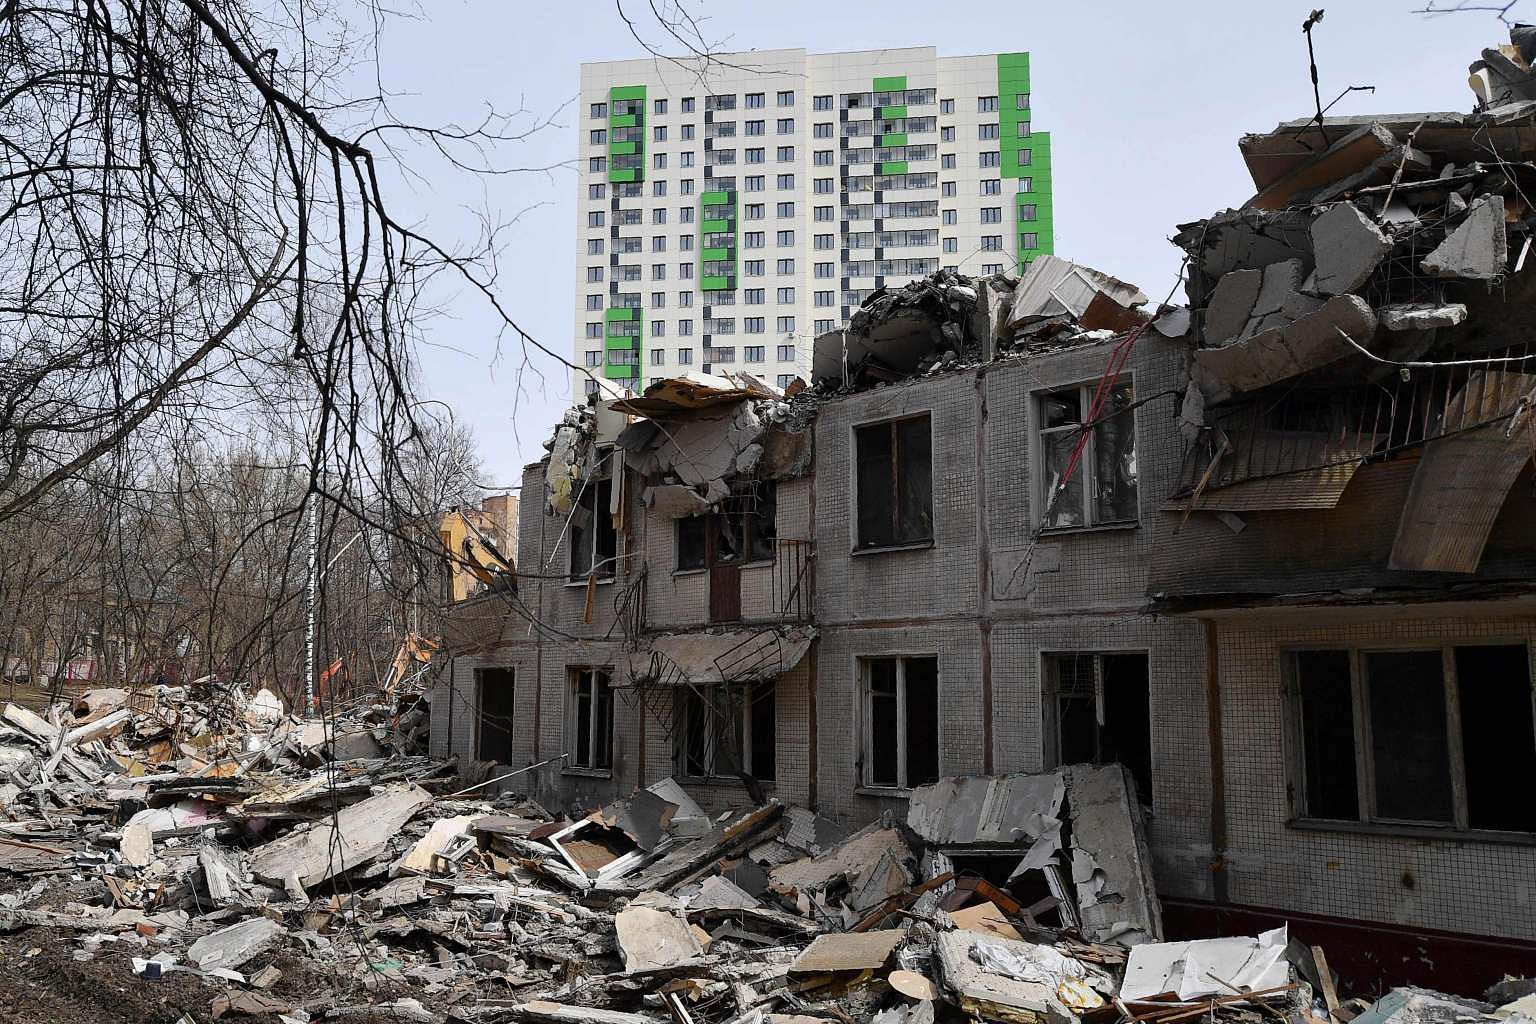 Moscow authorities began to demolish the building Tagansky ATS, despite the protests 04/24/2016 51